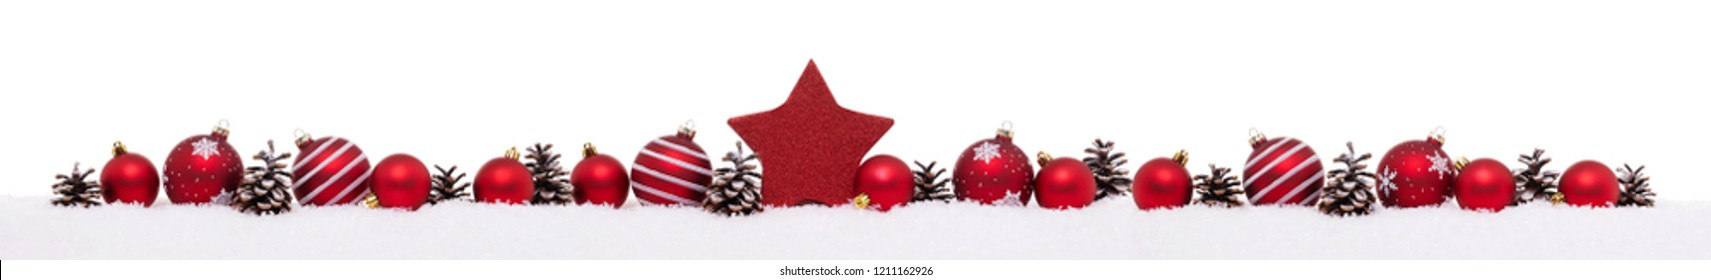 Row of red christmas balls with xmas present gift boxes isolated on snow